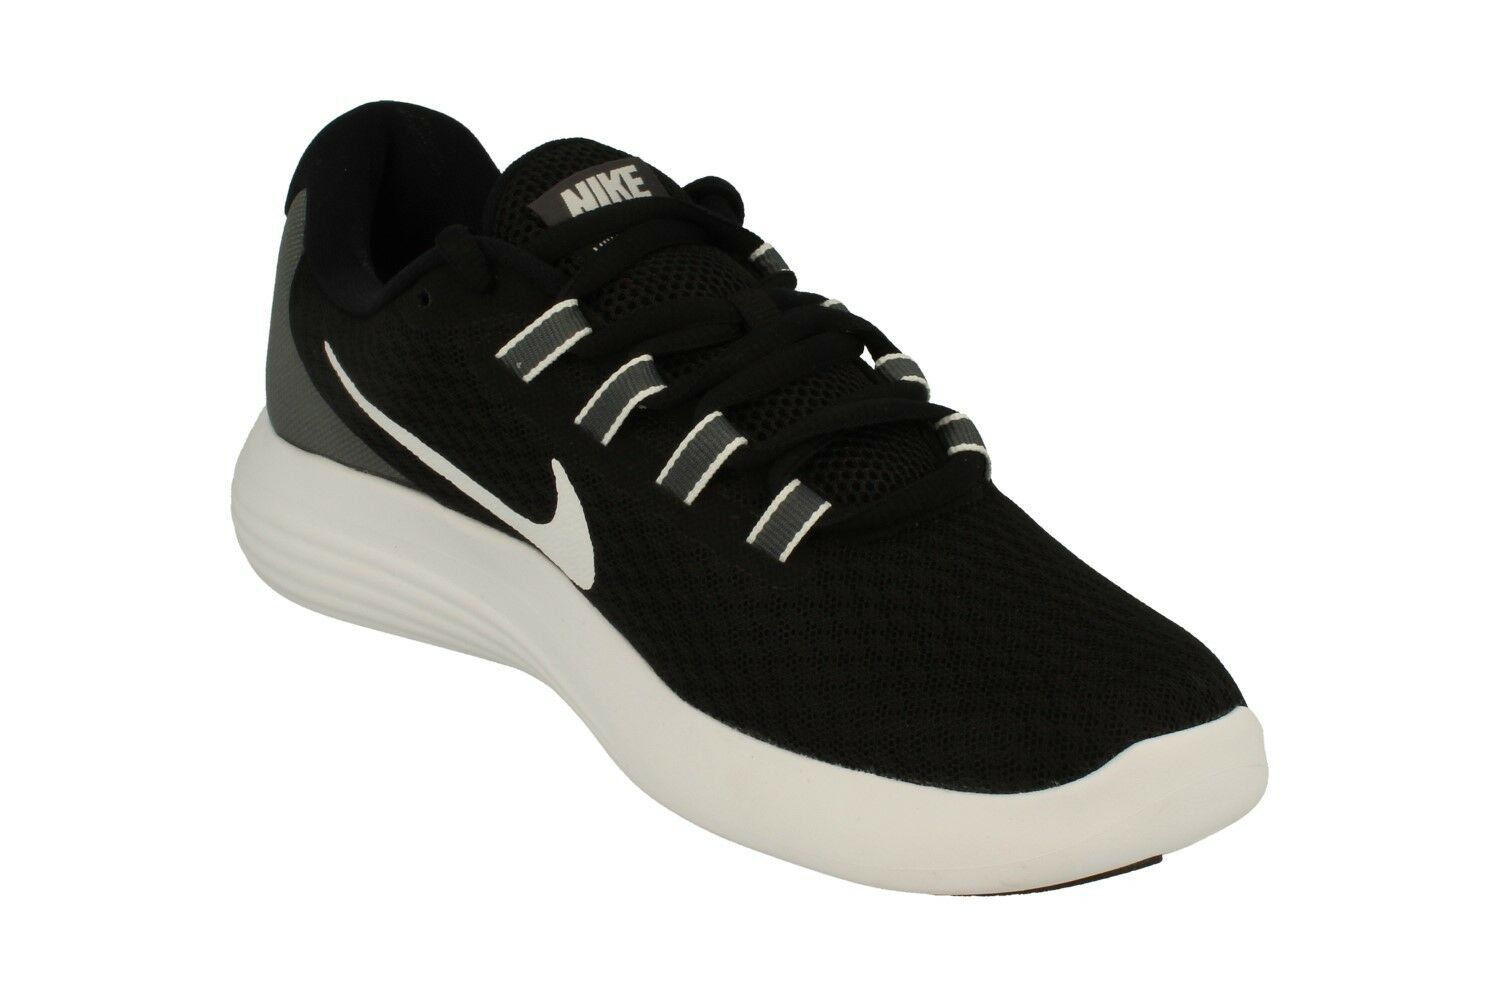 new arrivals 7a00a 9f85a ... real nike femmes luanrconverge luanrconverge luanrconverge basket  course 852469 baskets 001 8815ee 5a15c 123dd